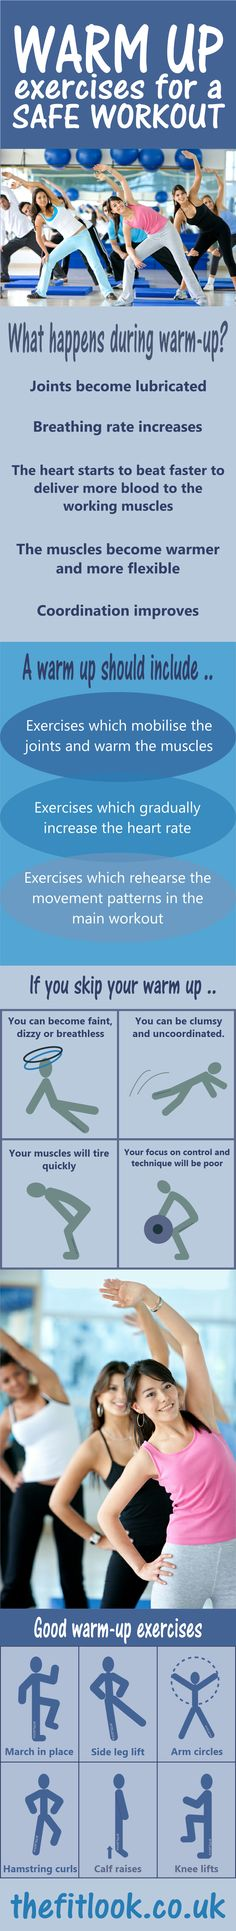 Warm up exercises may seem like a waste of time, but a few minutes warming up makes a big difference to your workout. With warm up exercise chart.